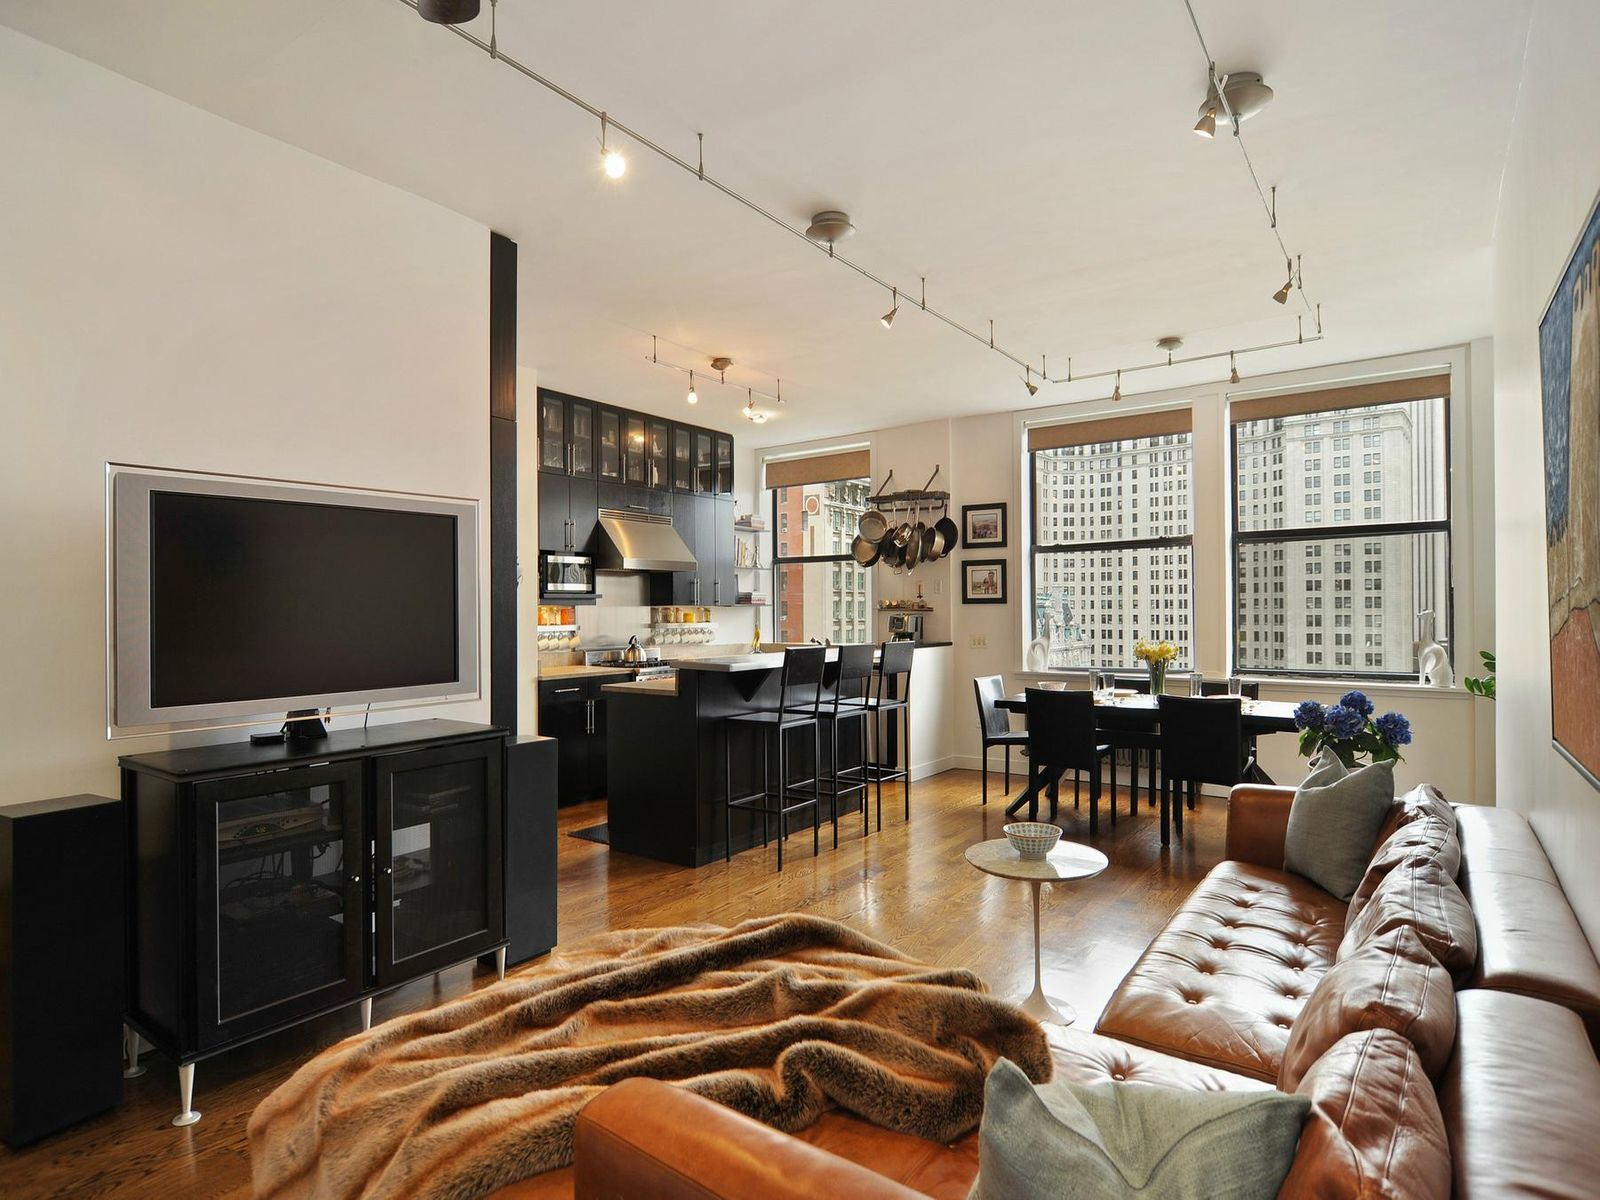 Jaw Dropping Views in TriBeCa, New York NY Cooperative - New York City Real Estate